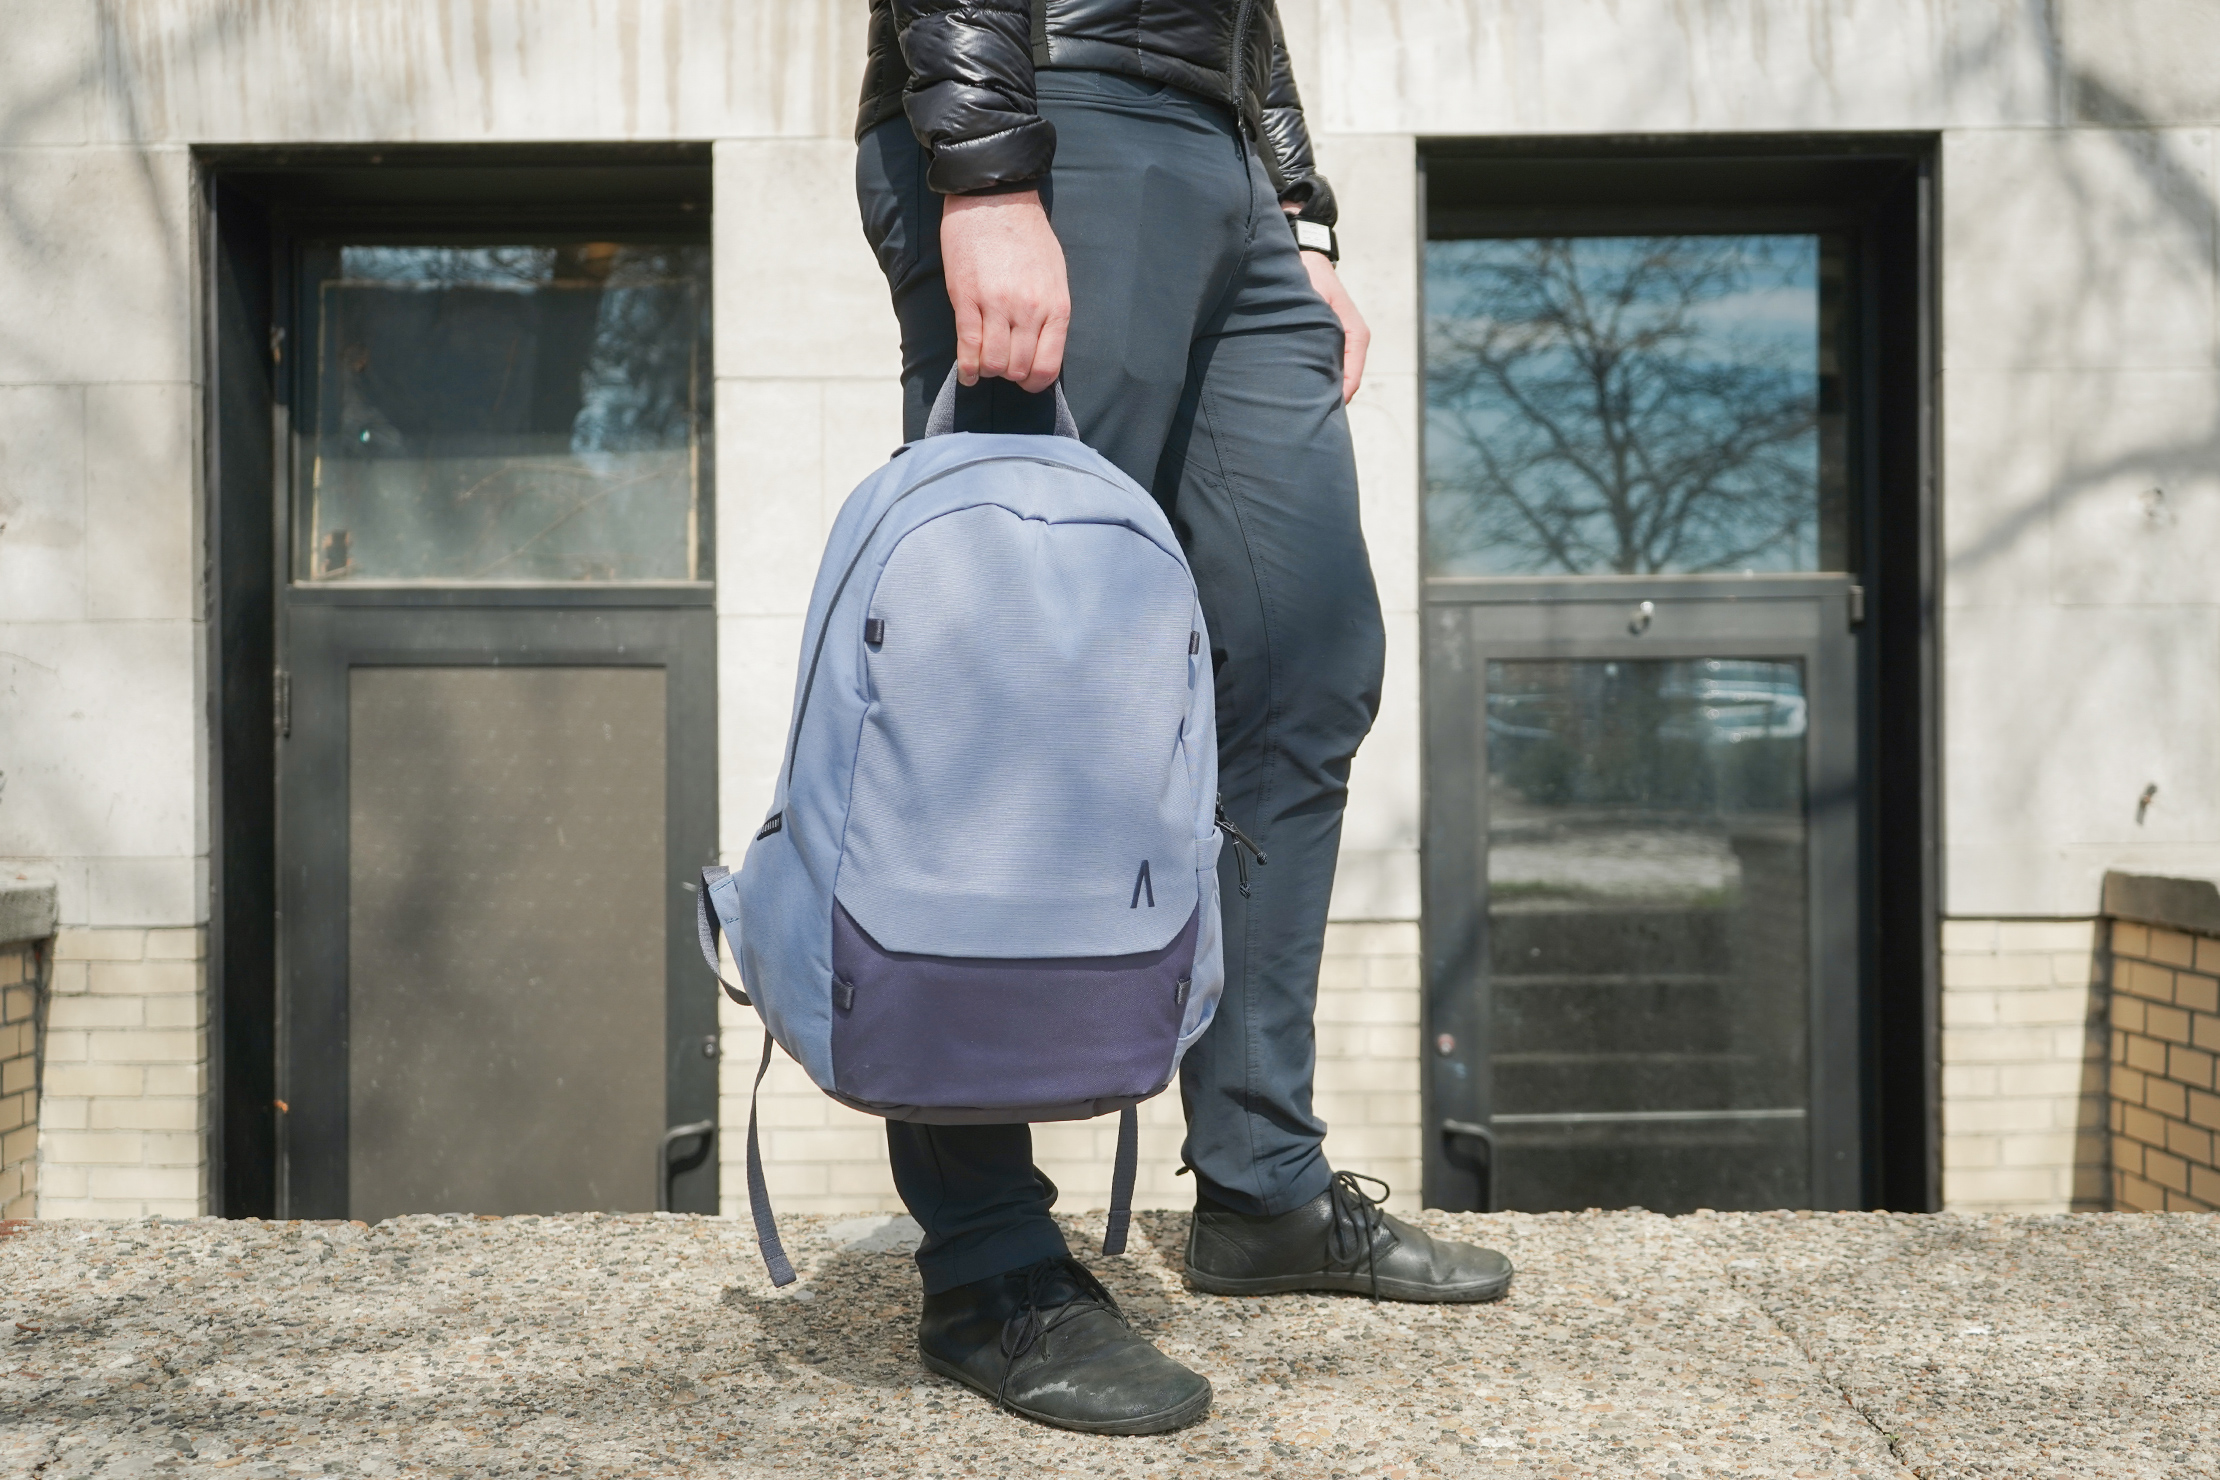 Boundary Supply Rennen Recycled Daypack | Using the daypack in the city